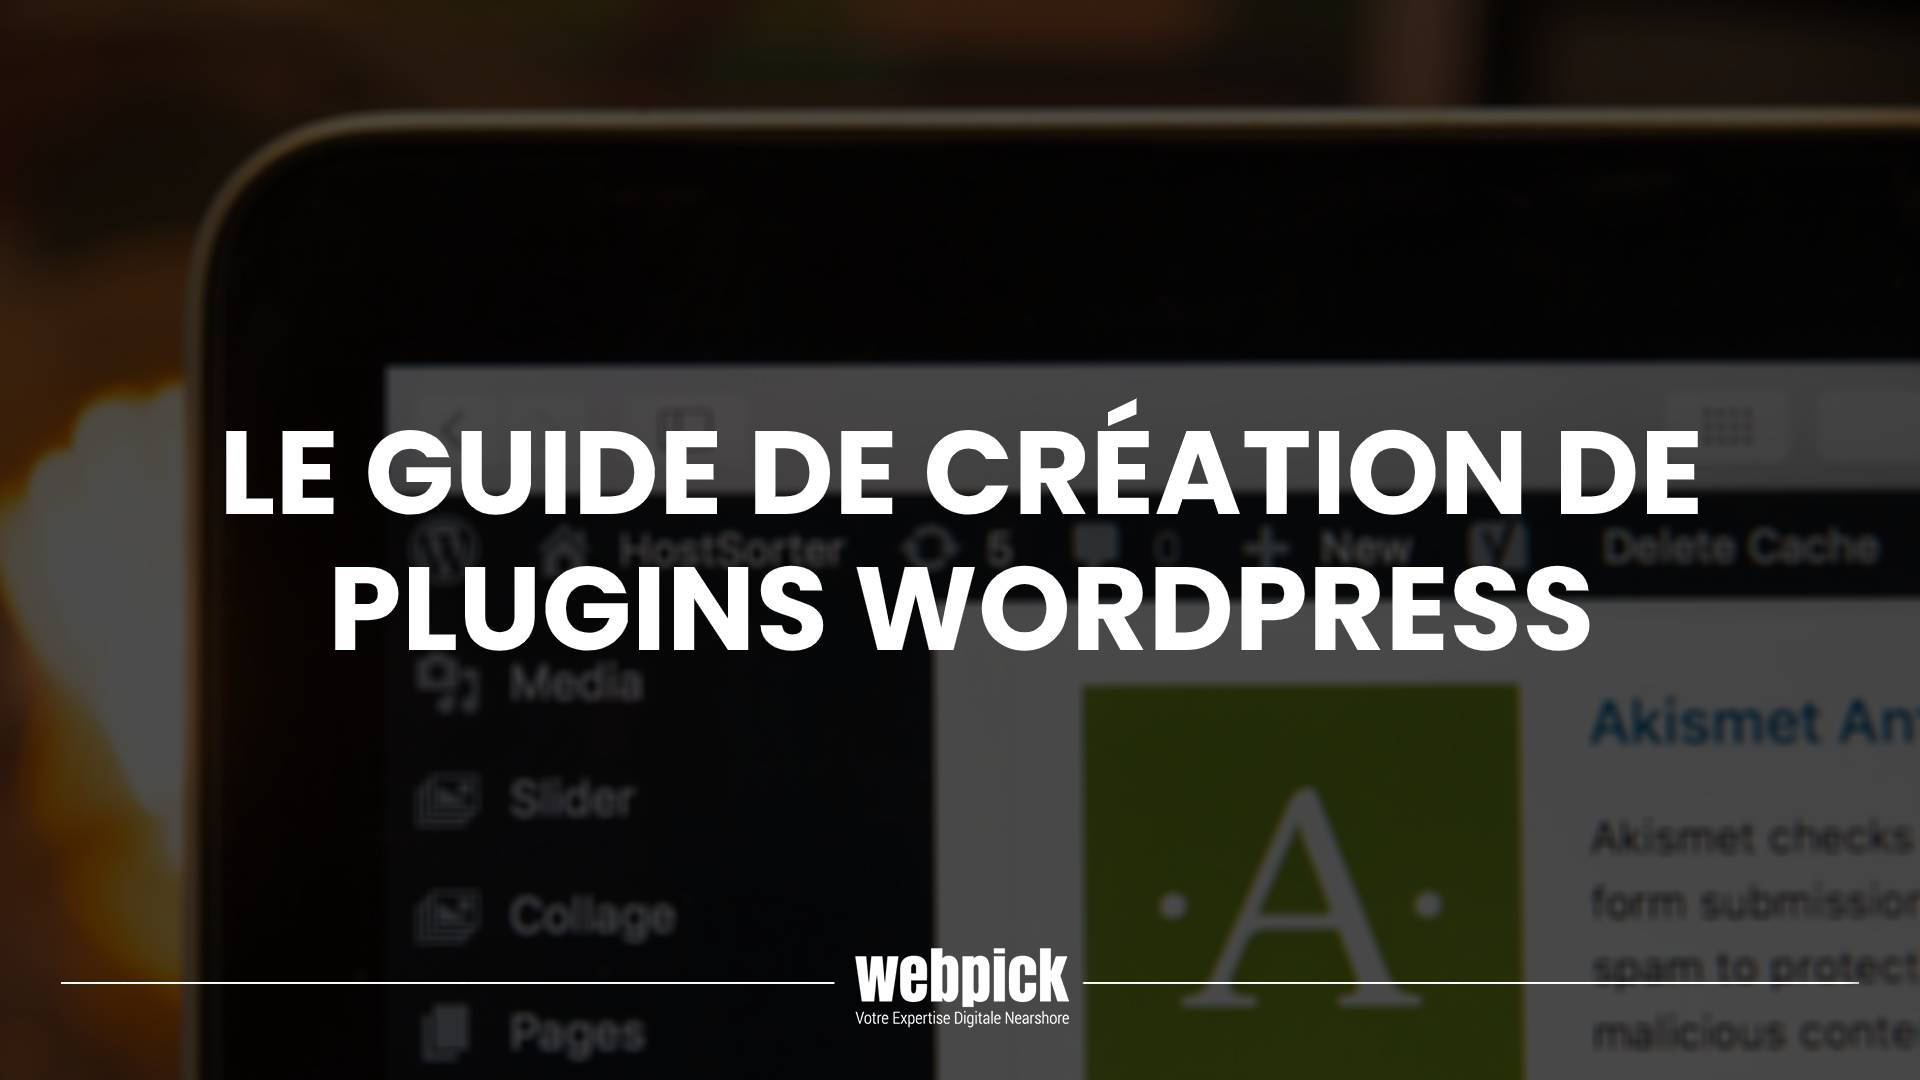 Le Guide de Création de Plugins WordPress